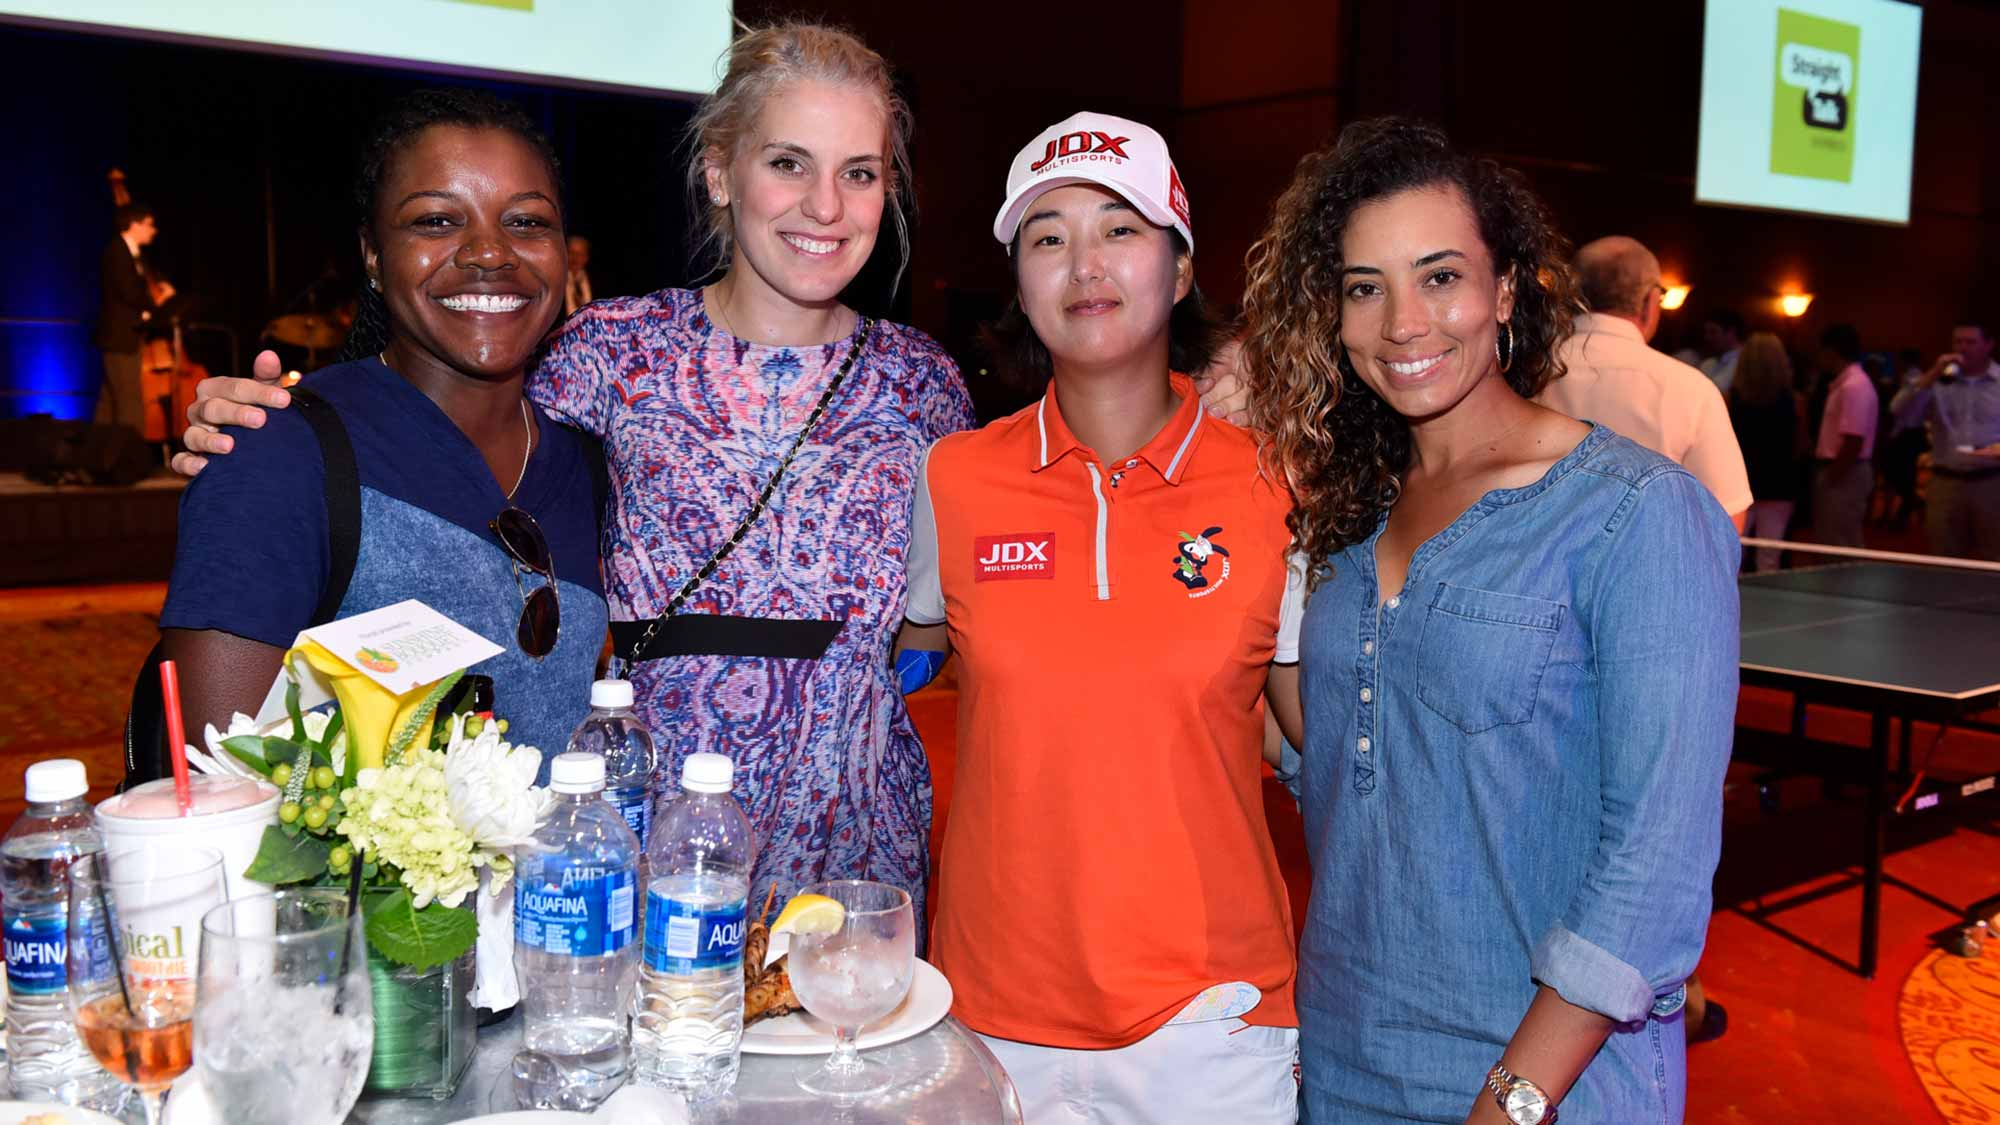 Rookies Mariah Stackhouse and Olafia Kristinsdottir pose for a photo with Min Seo Kwak and Cheyenne Woods at the 2017 Walmart NW Arkansas Championship Presented by P&G